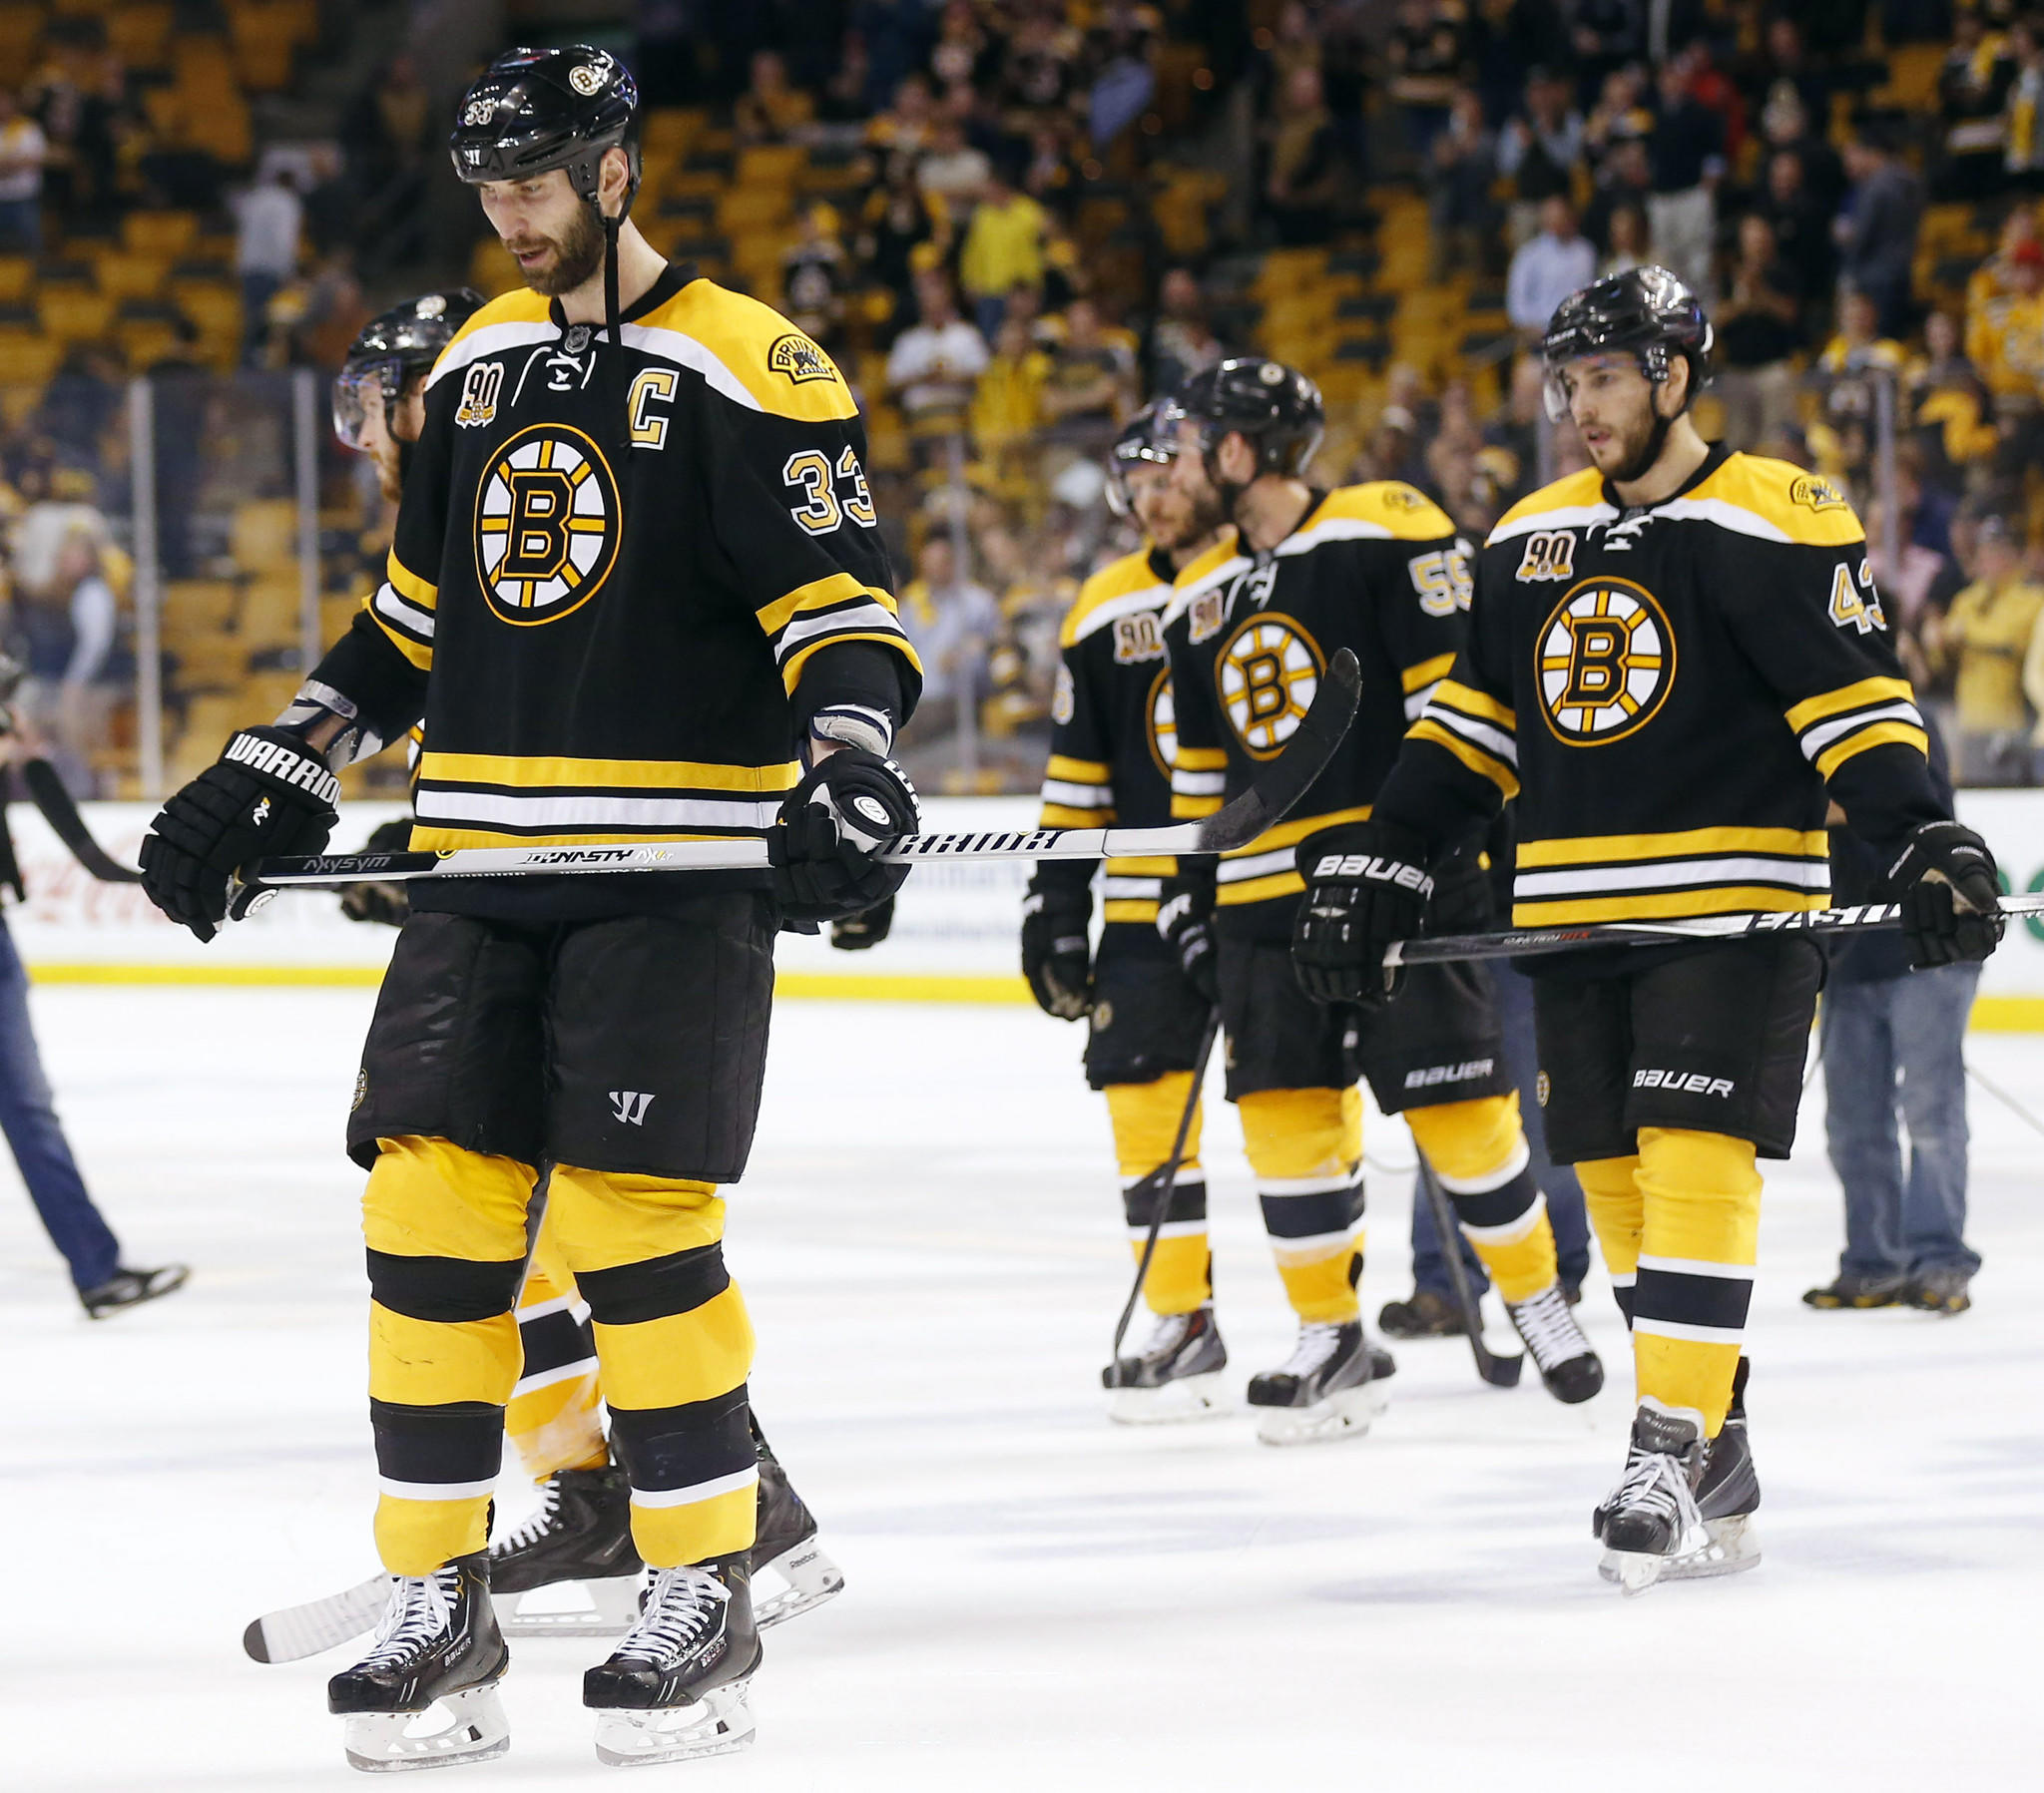 Boston Bruins defenseman Zdeno Chara (33) leads his team off the ice after their 3-1 loss to the Montreal Canadiens in game seven of the second round of the 2014 Stanley Cup Playoffs at TD Garden.